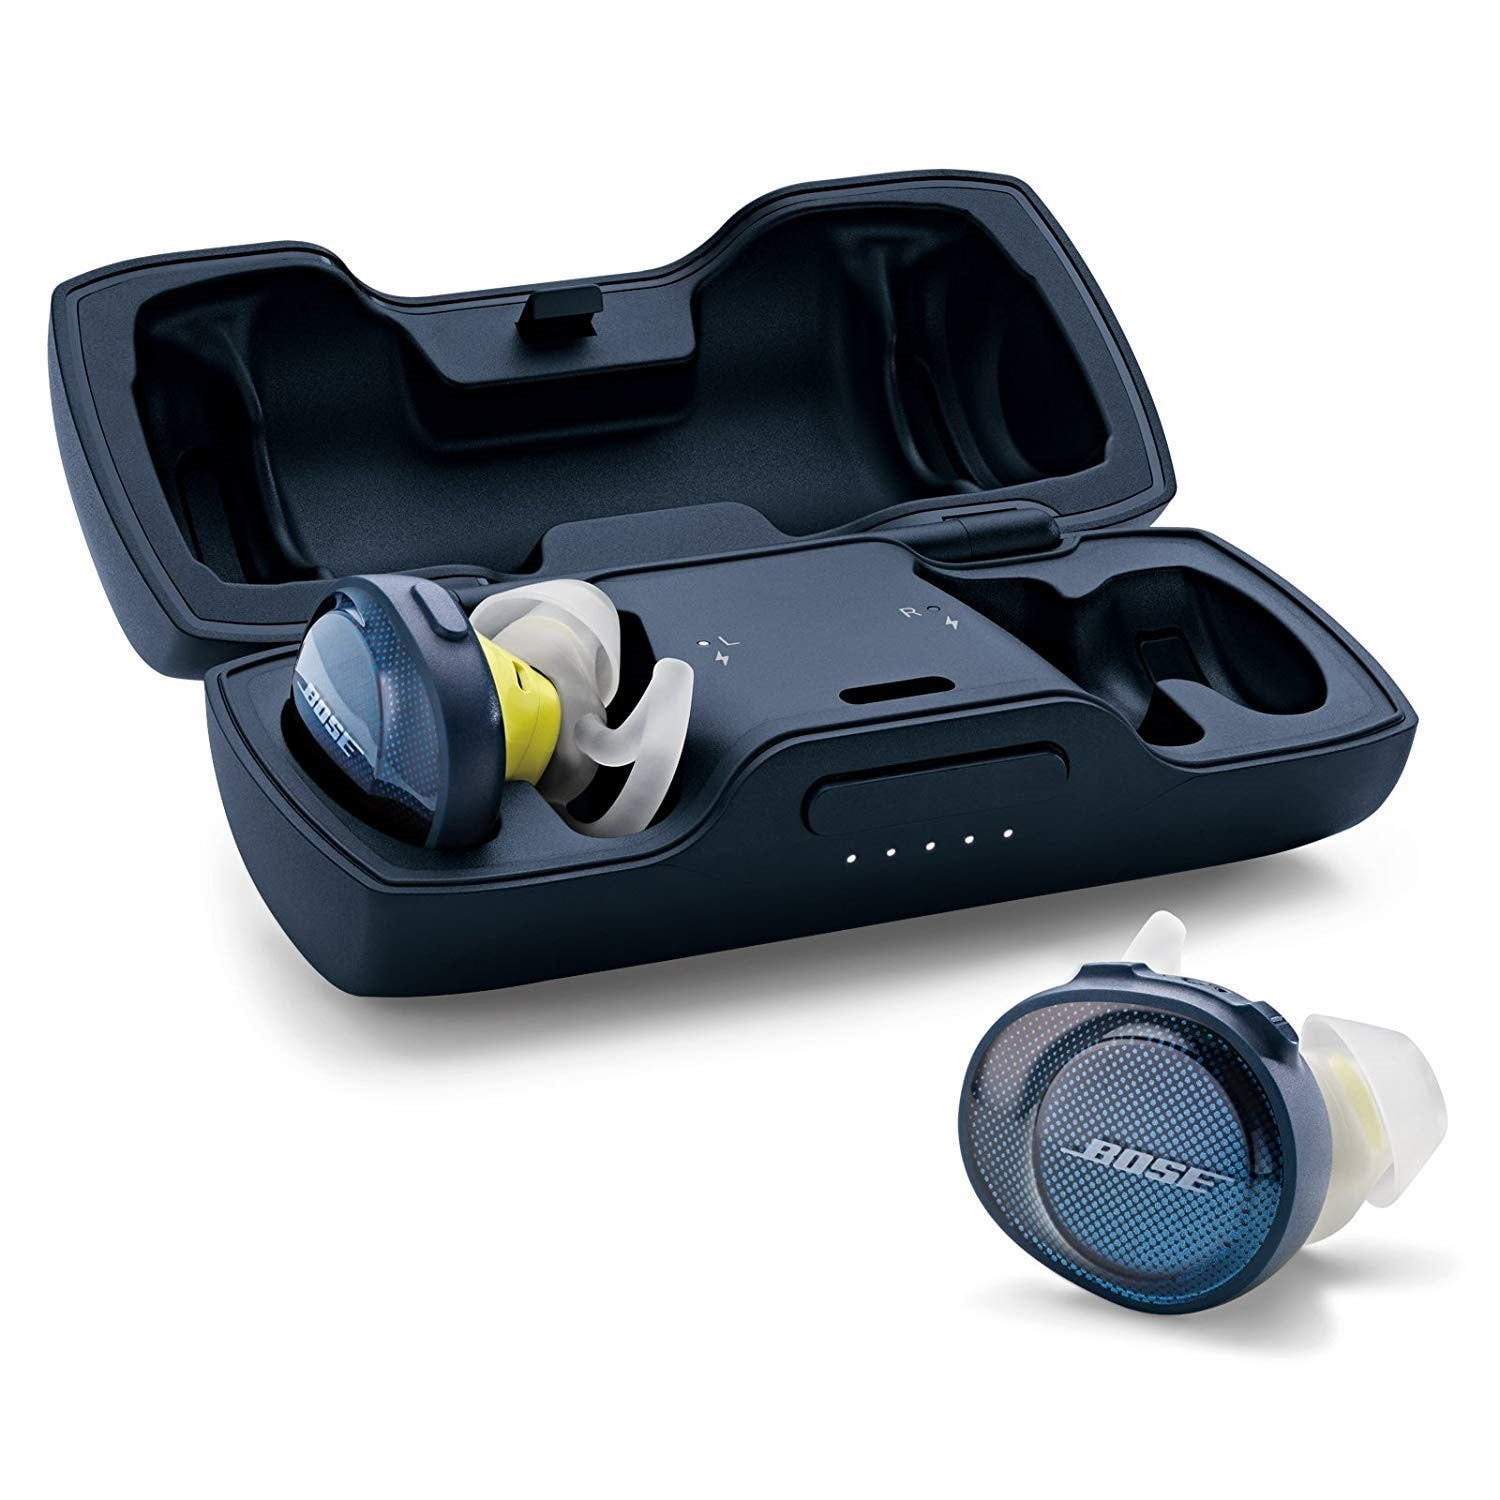 Bose Sound Sport Free (Rs 18,989): Bose is an audio brand known for its premium offering with unmatched audio output. Their true wireless earbuds come with a stylish appearance and use Bose's proprietary StayHear+ Sports tips for a secure yet comfortable fit. In addition, they are sweat and weather resistant making them great for exercise. You get up to 5 hours of playback with additional 10 hours via the charging case. It also supports fast charge – 15 minutes of charge gives up to 45 minutes of usage time. The only drawback is that it supports voice calls only via the right earbud.